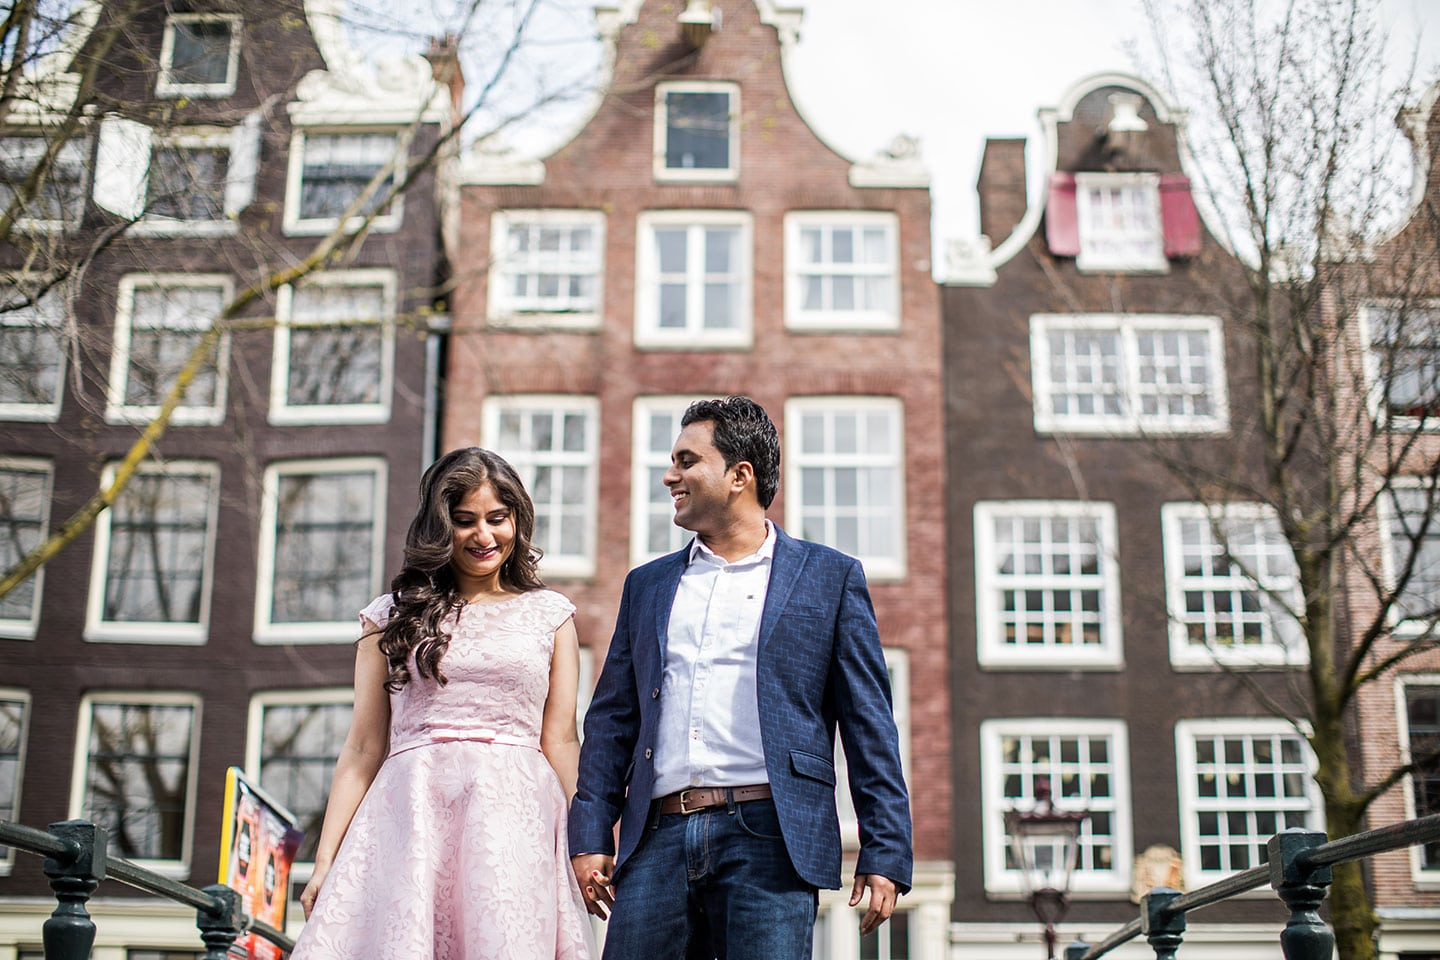 European prewedding shoot for an Indian couple in Amsterdam, Holland